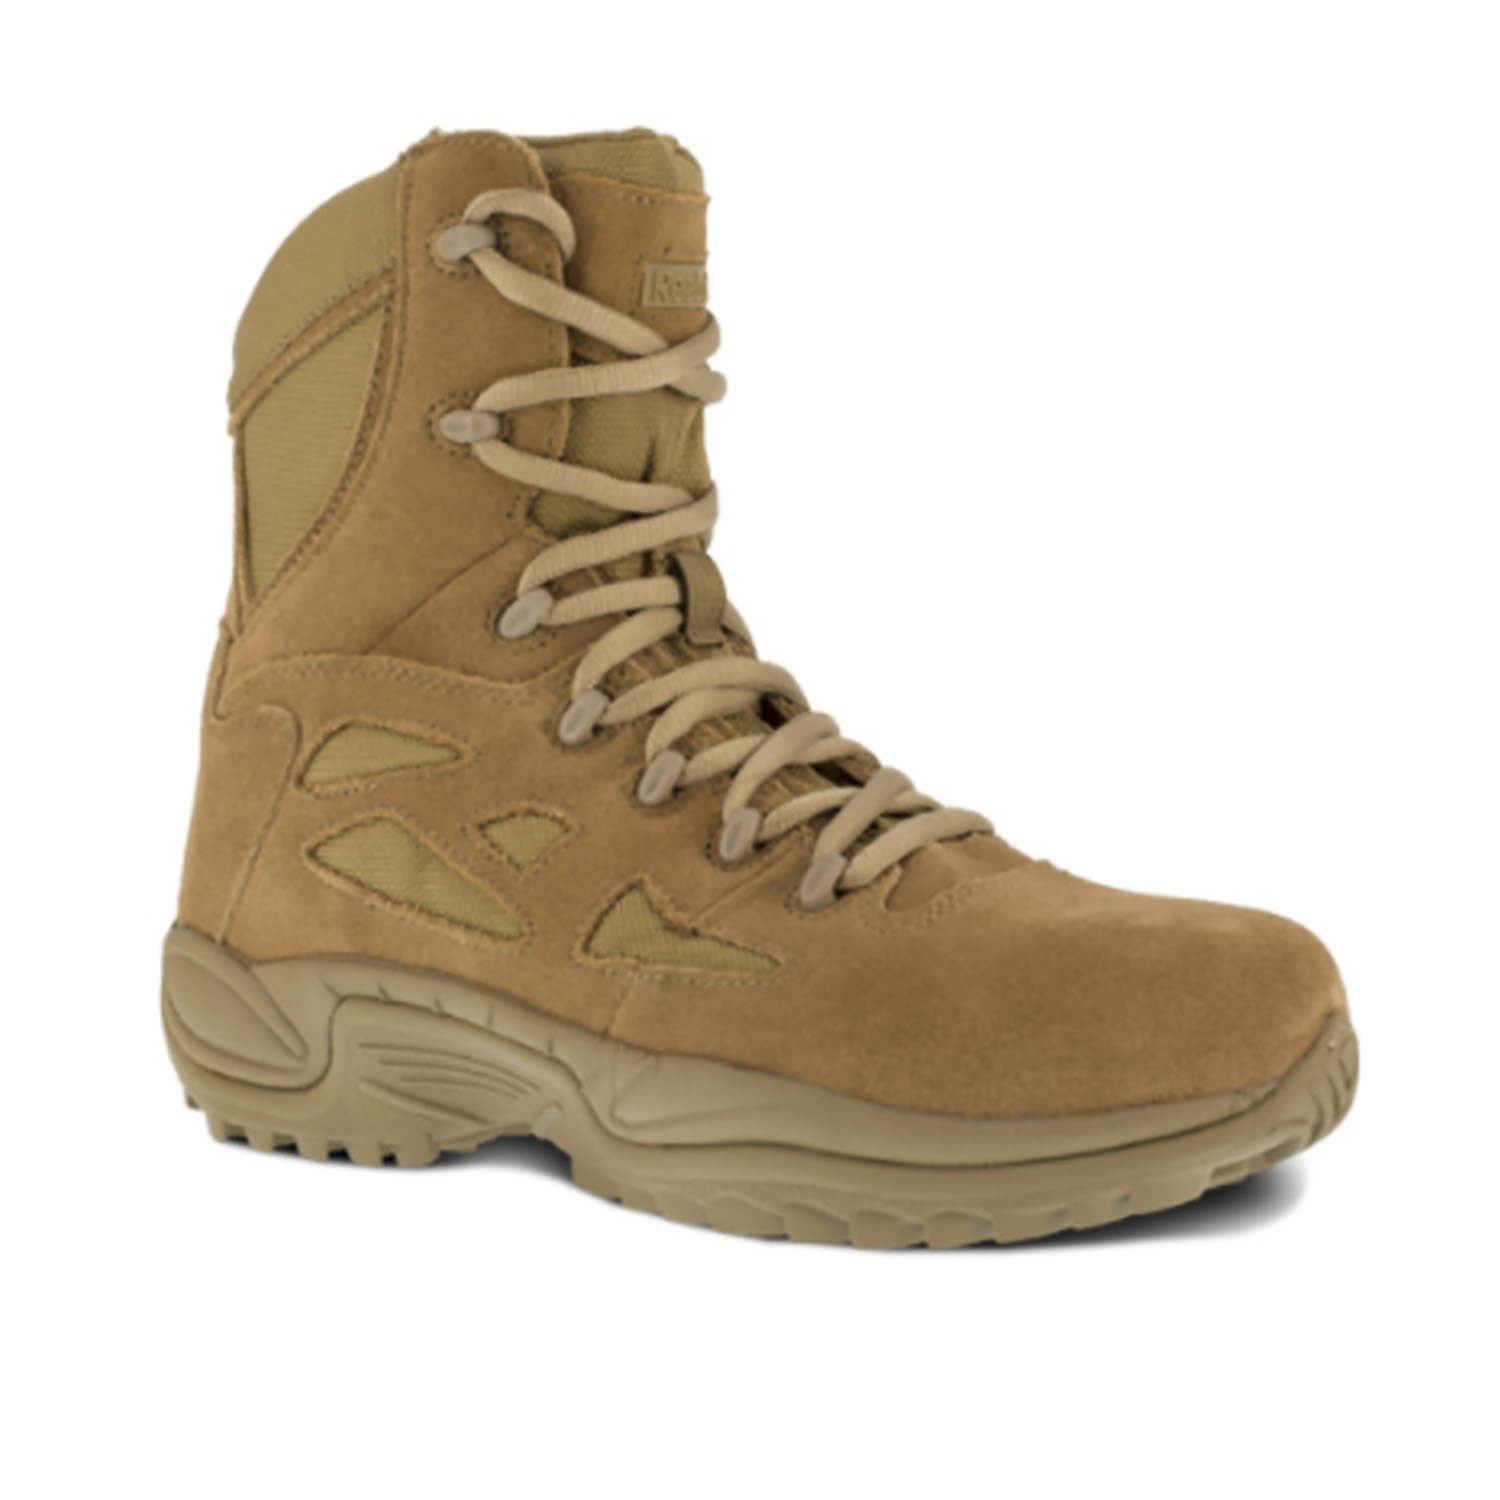 "Reebok Women's 8"" Coyote Soft Toe Stealth Boot"